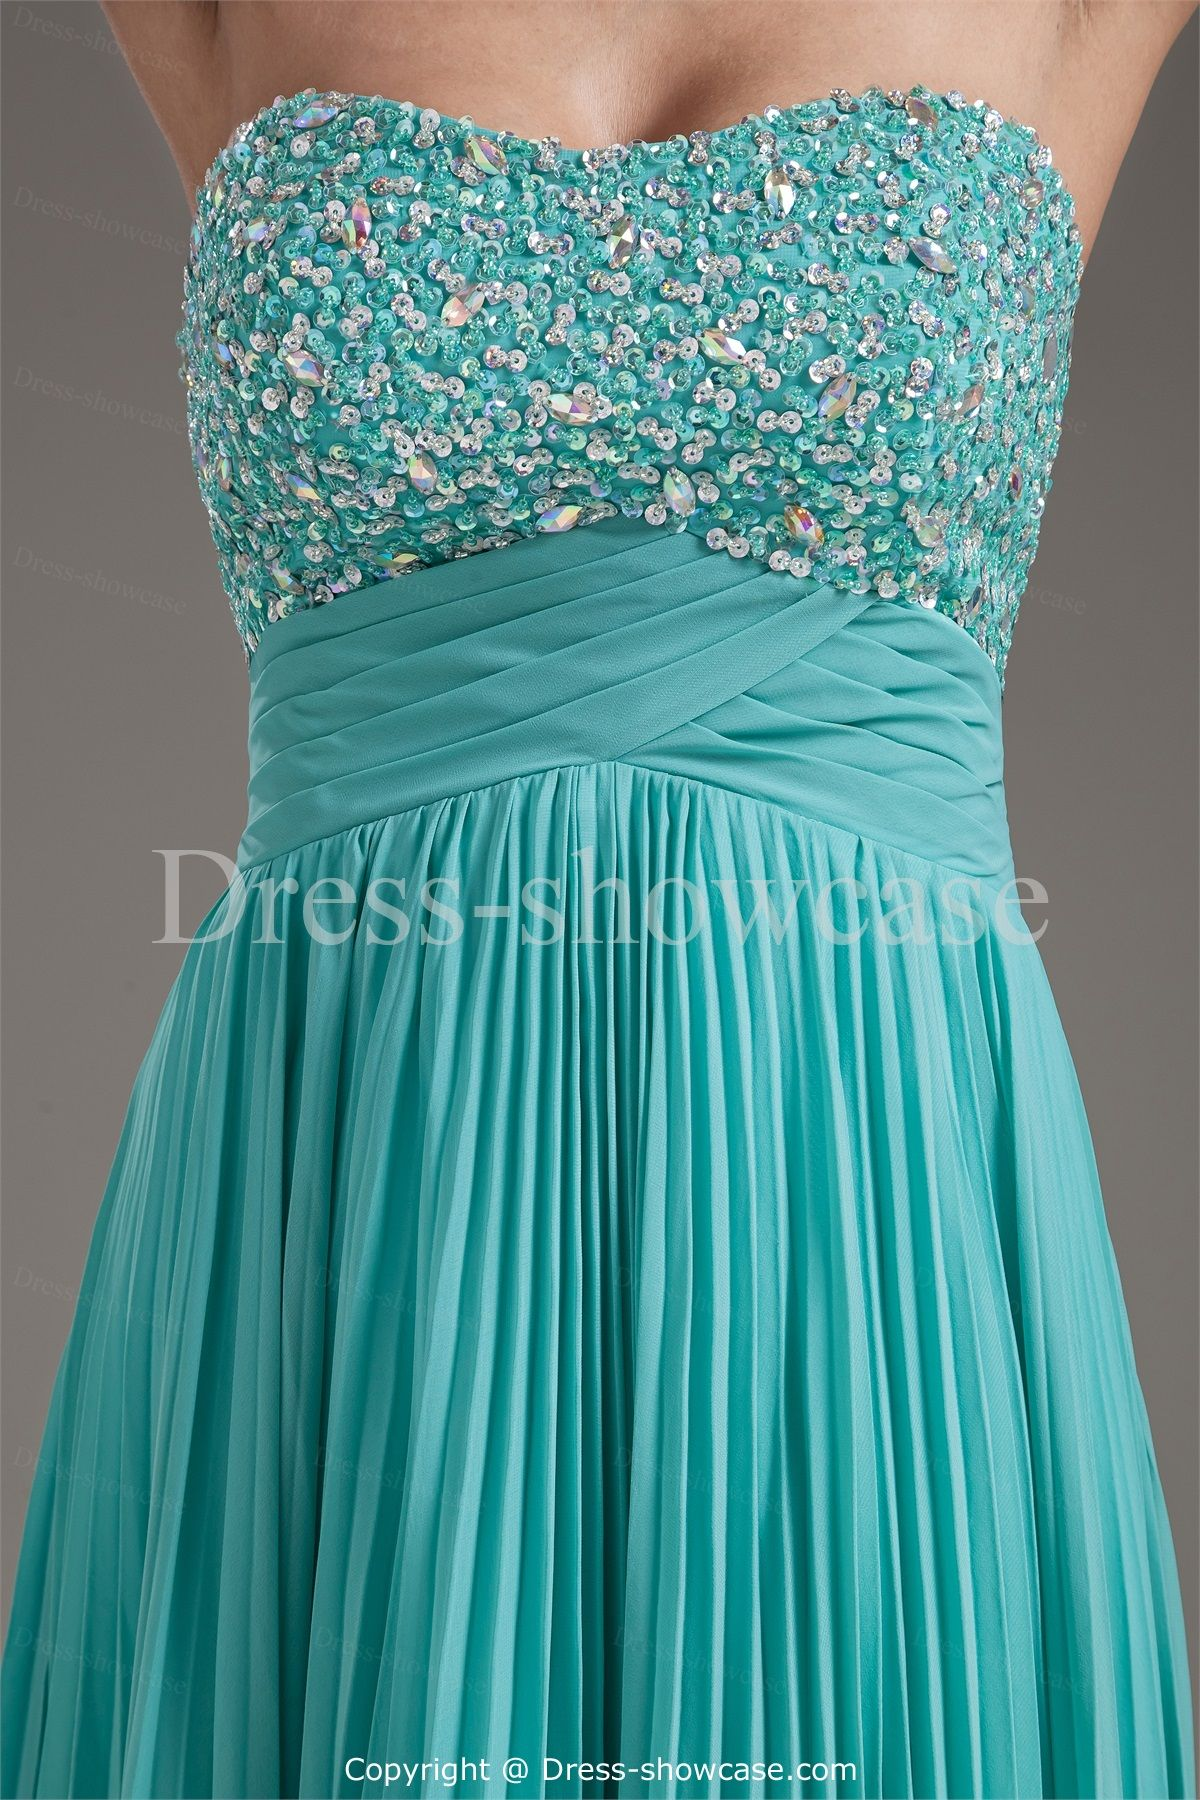 bridesmaid dresses in turquoise | Turquoise A-Line Wedding Guest ...